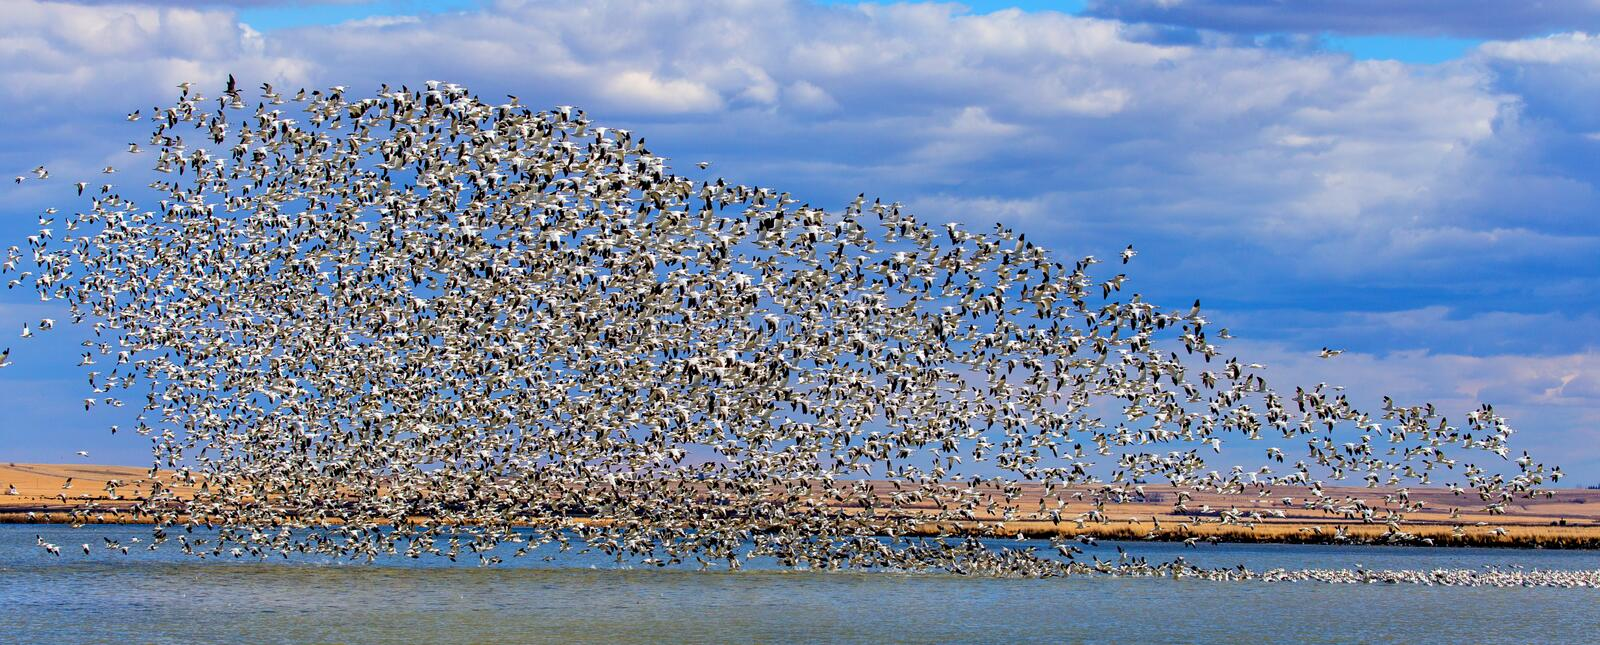 Many Snowgeese Taking Off From A Lake. This image shows many snowgeese lifting off (taking flight) from a lake in the Freezeout Lakes Waterfowl Management Area royalty free stock photo